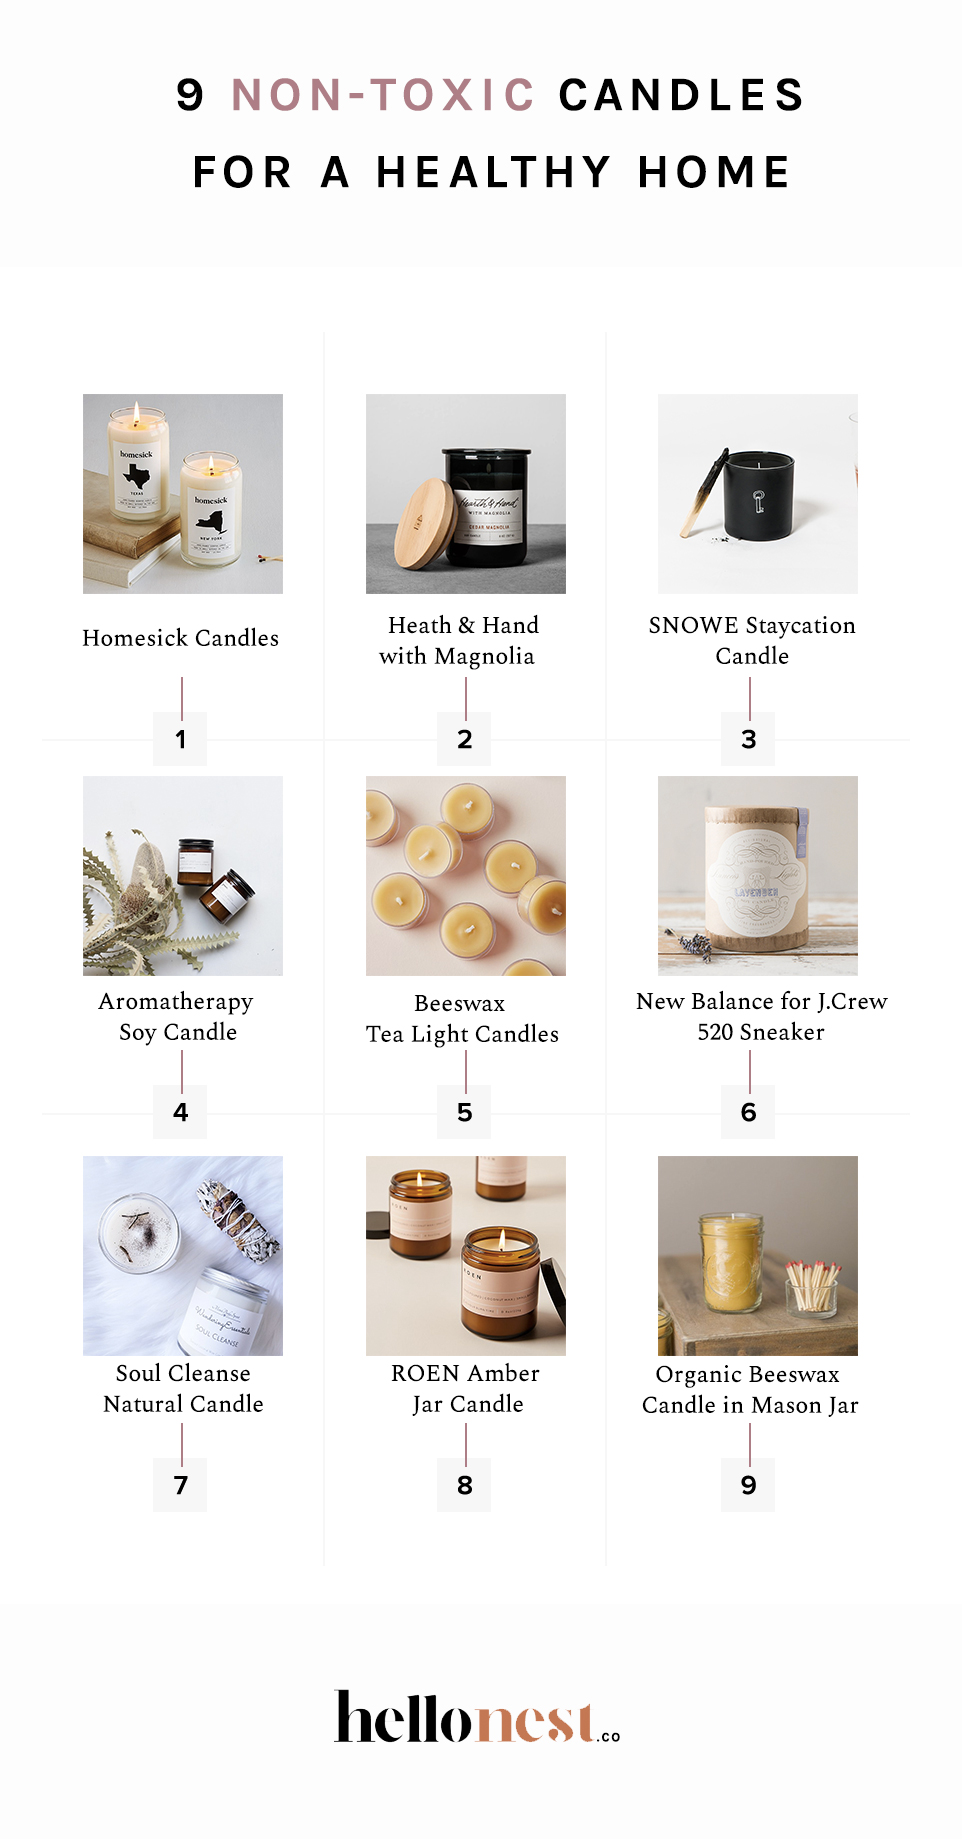 9 Non-Toxic Candles for a Healthy Home